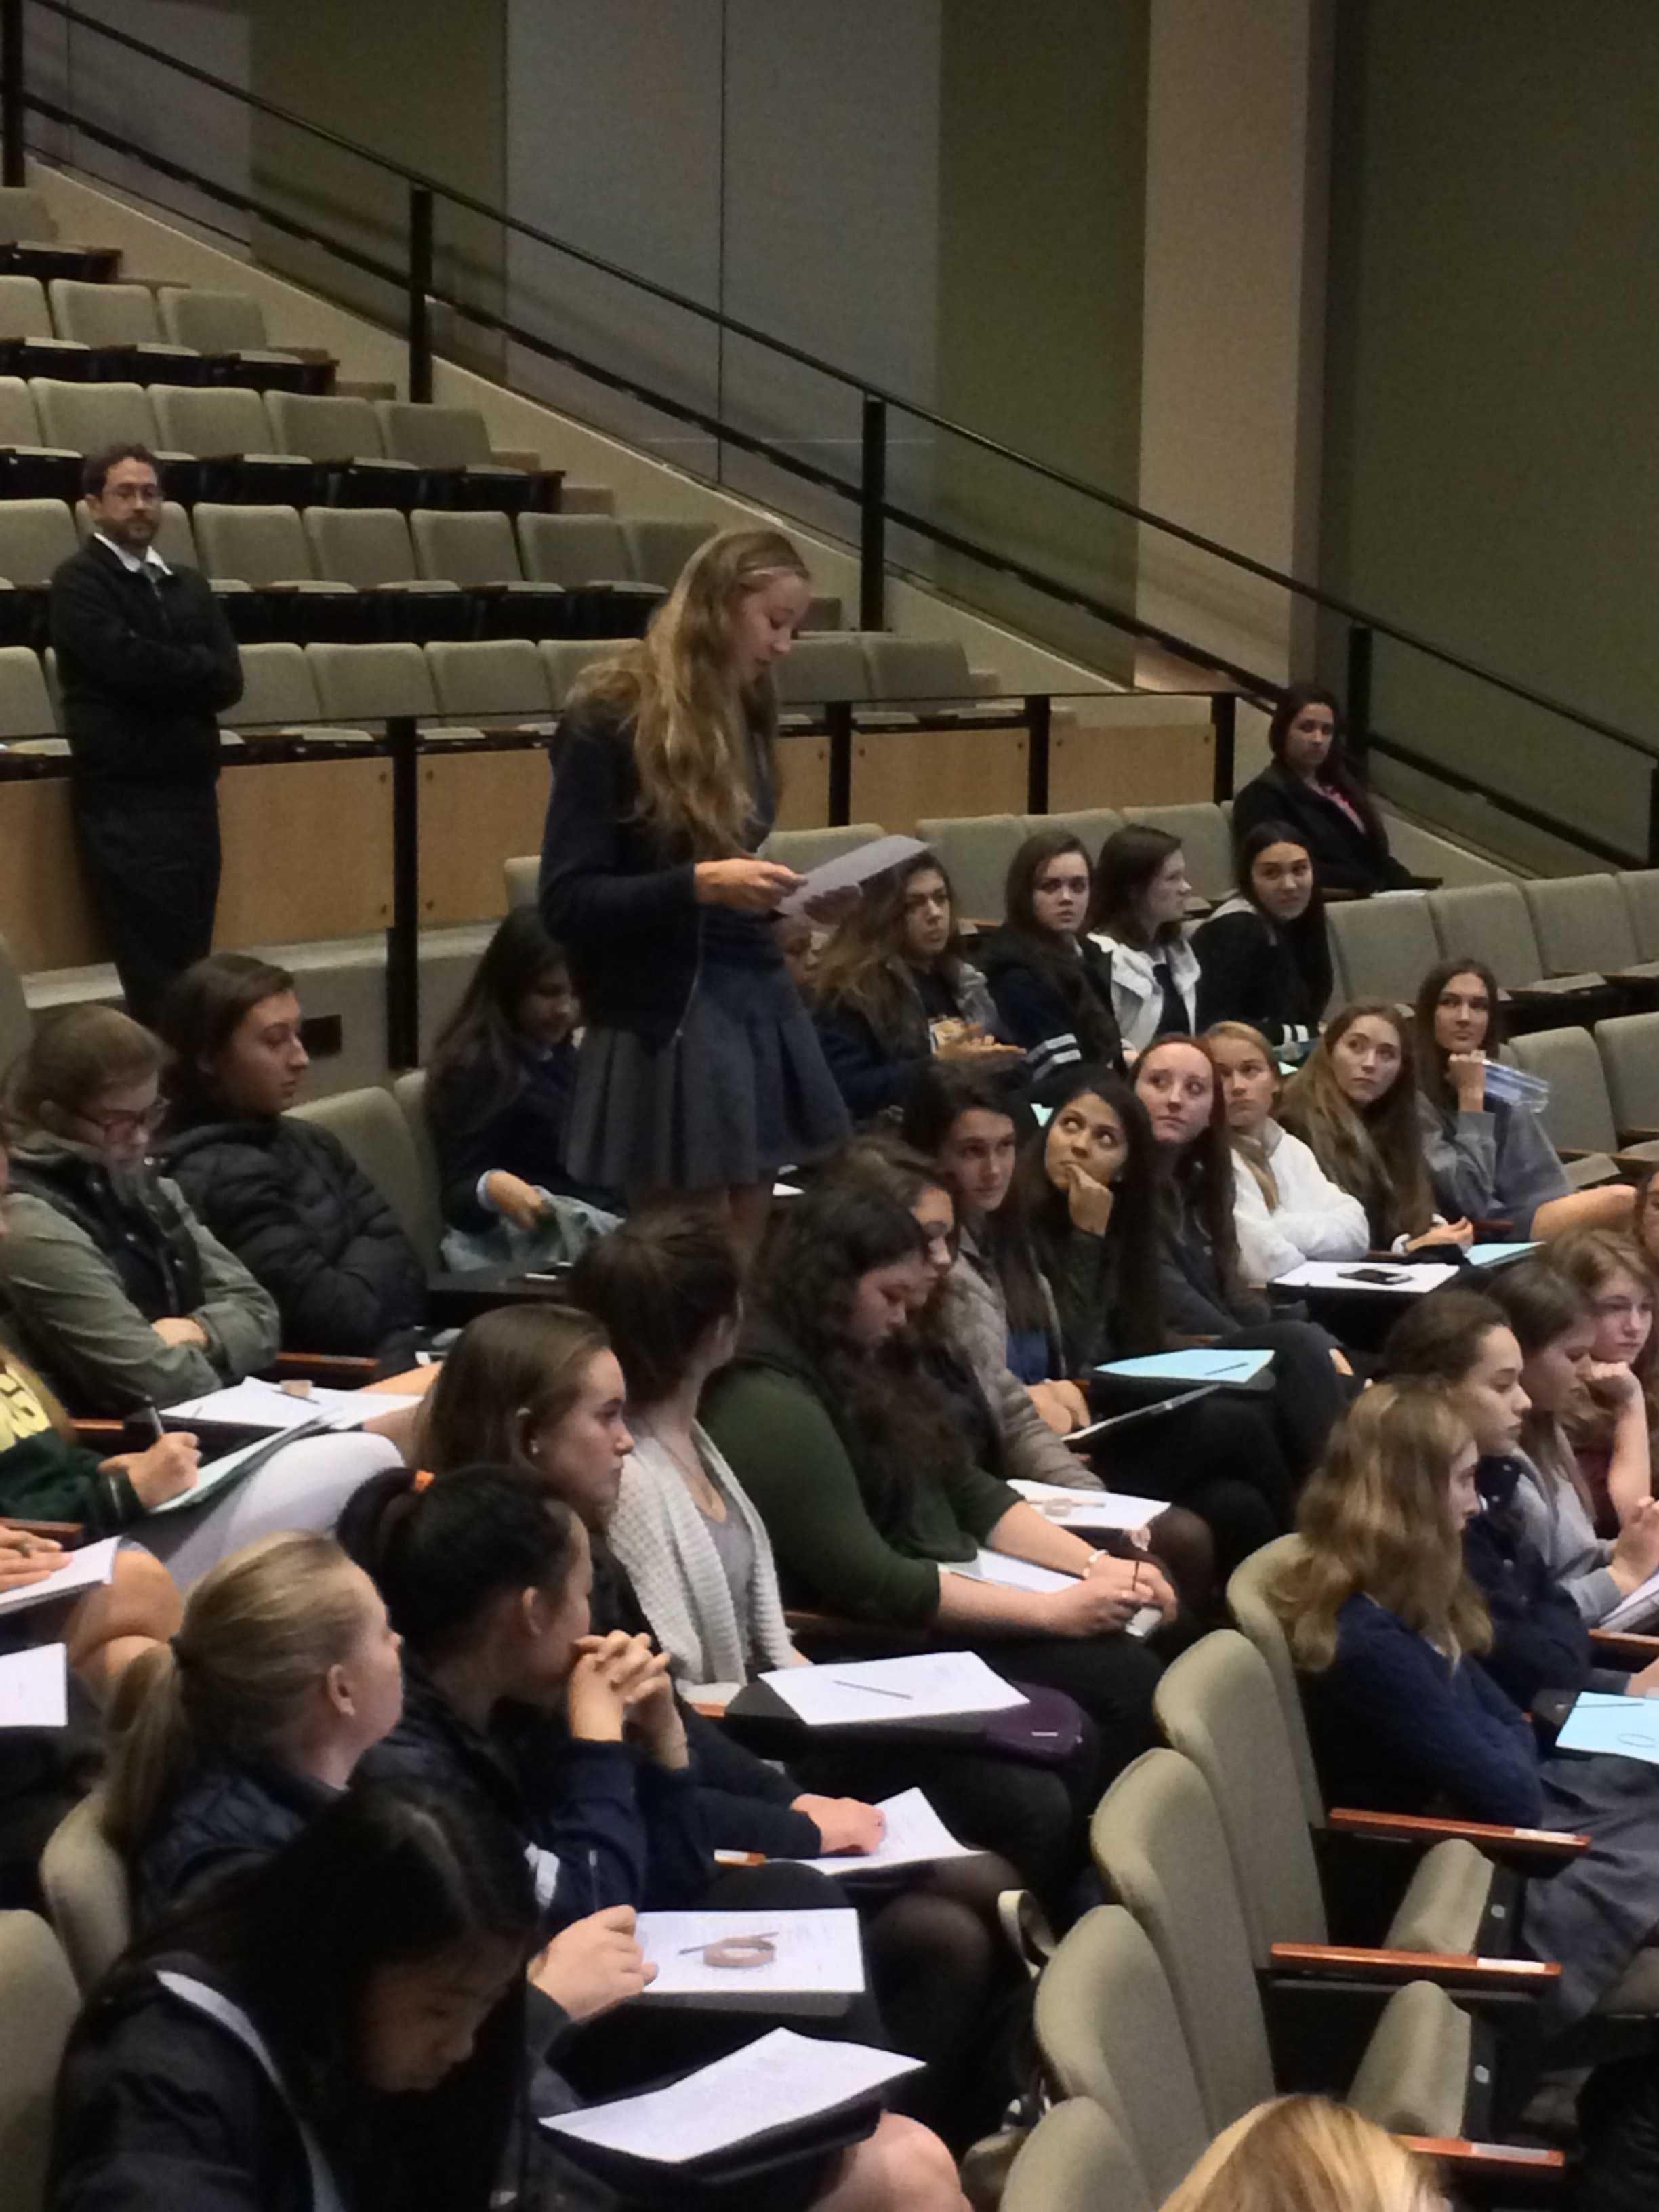 Audrey Brooke reads from her letter of apology, as members of her senior class and English teacher Mark Botti look on. The apology writing brought audience members into the case, and tried to give them a sense of the guilt felt by judges, juries, and everyone involved in legal cases when an innocent person is convicted.